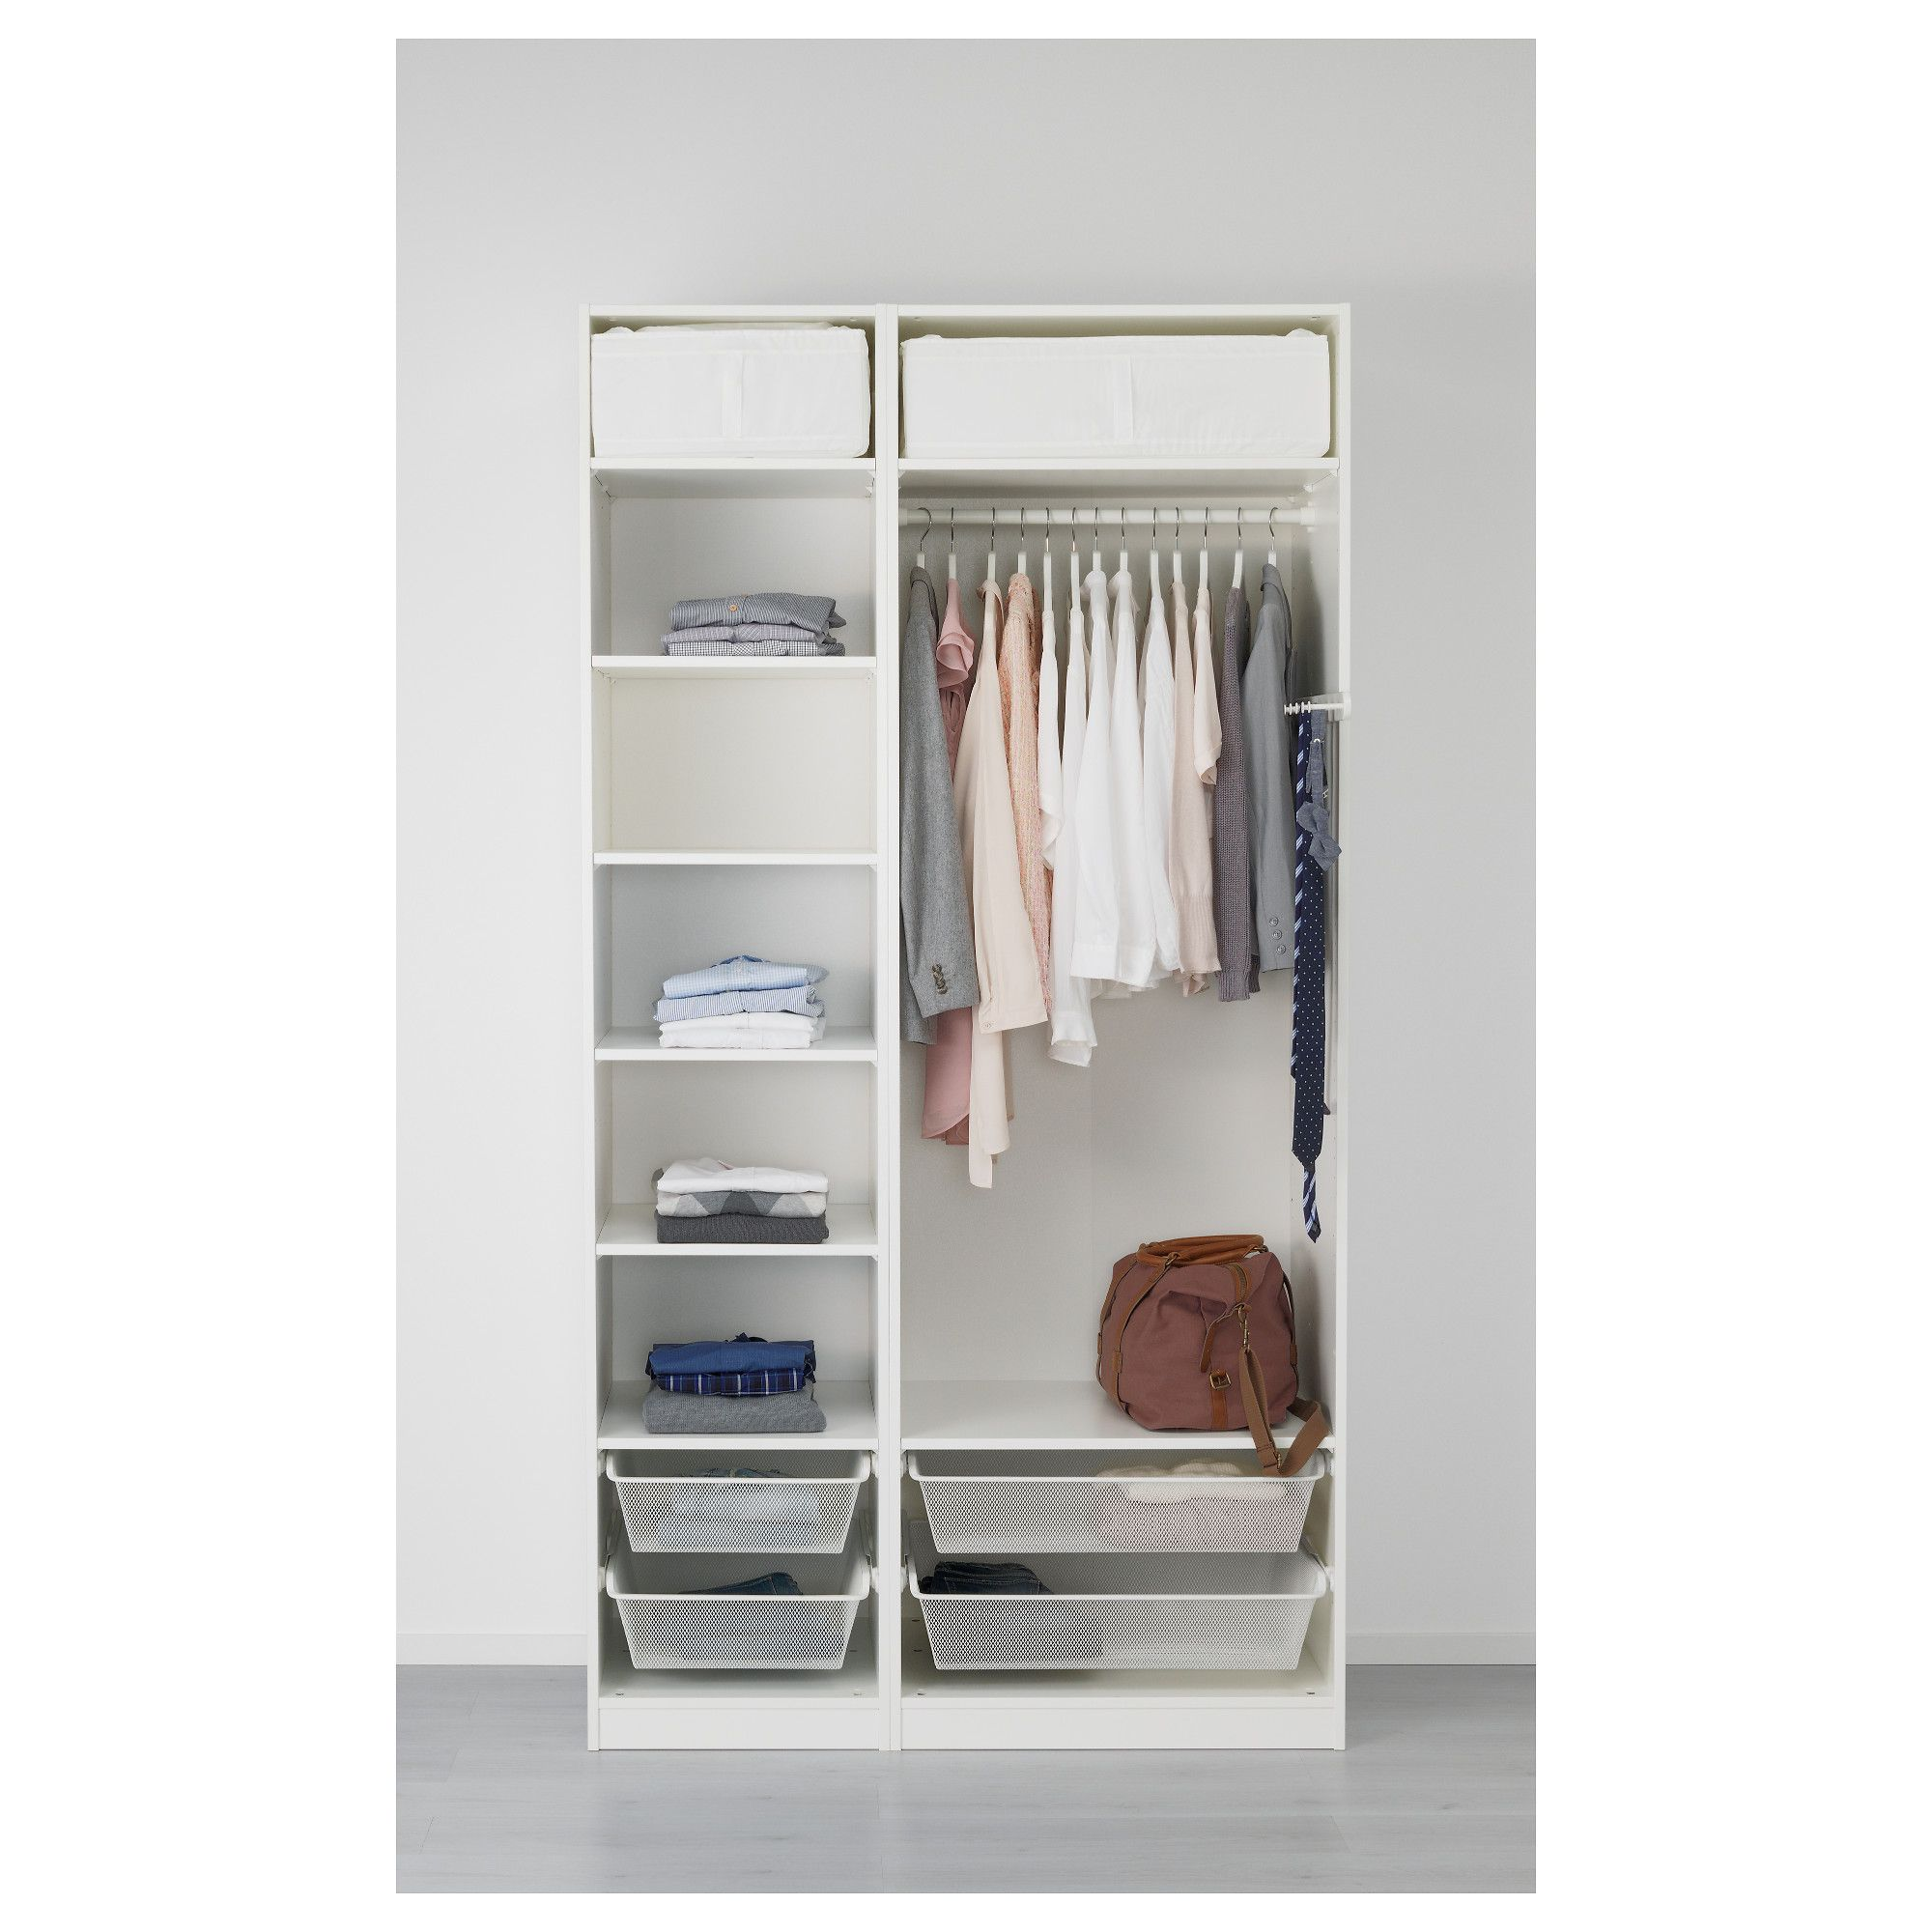 Guardaroba Pax Ballstad Ikea.Ikea Pax Wardrobe White Ballstad Vikedal Ideas For Our Bedroom